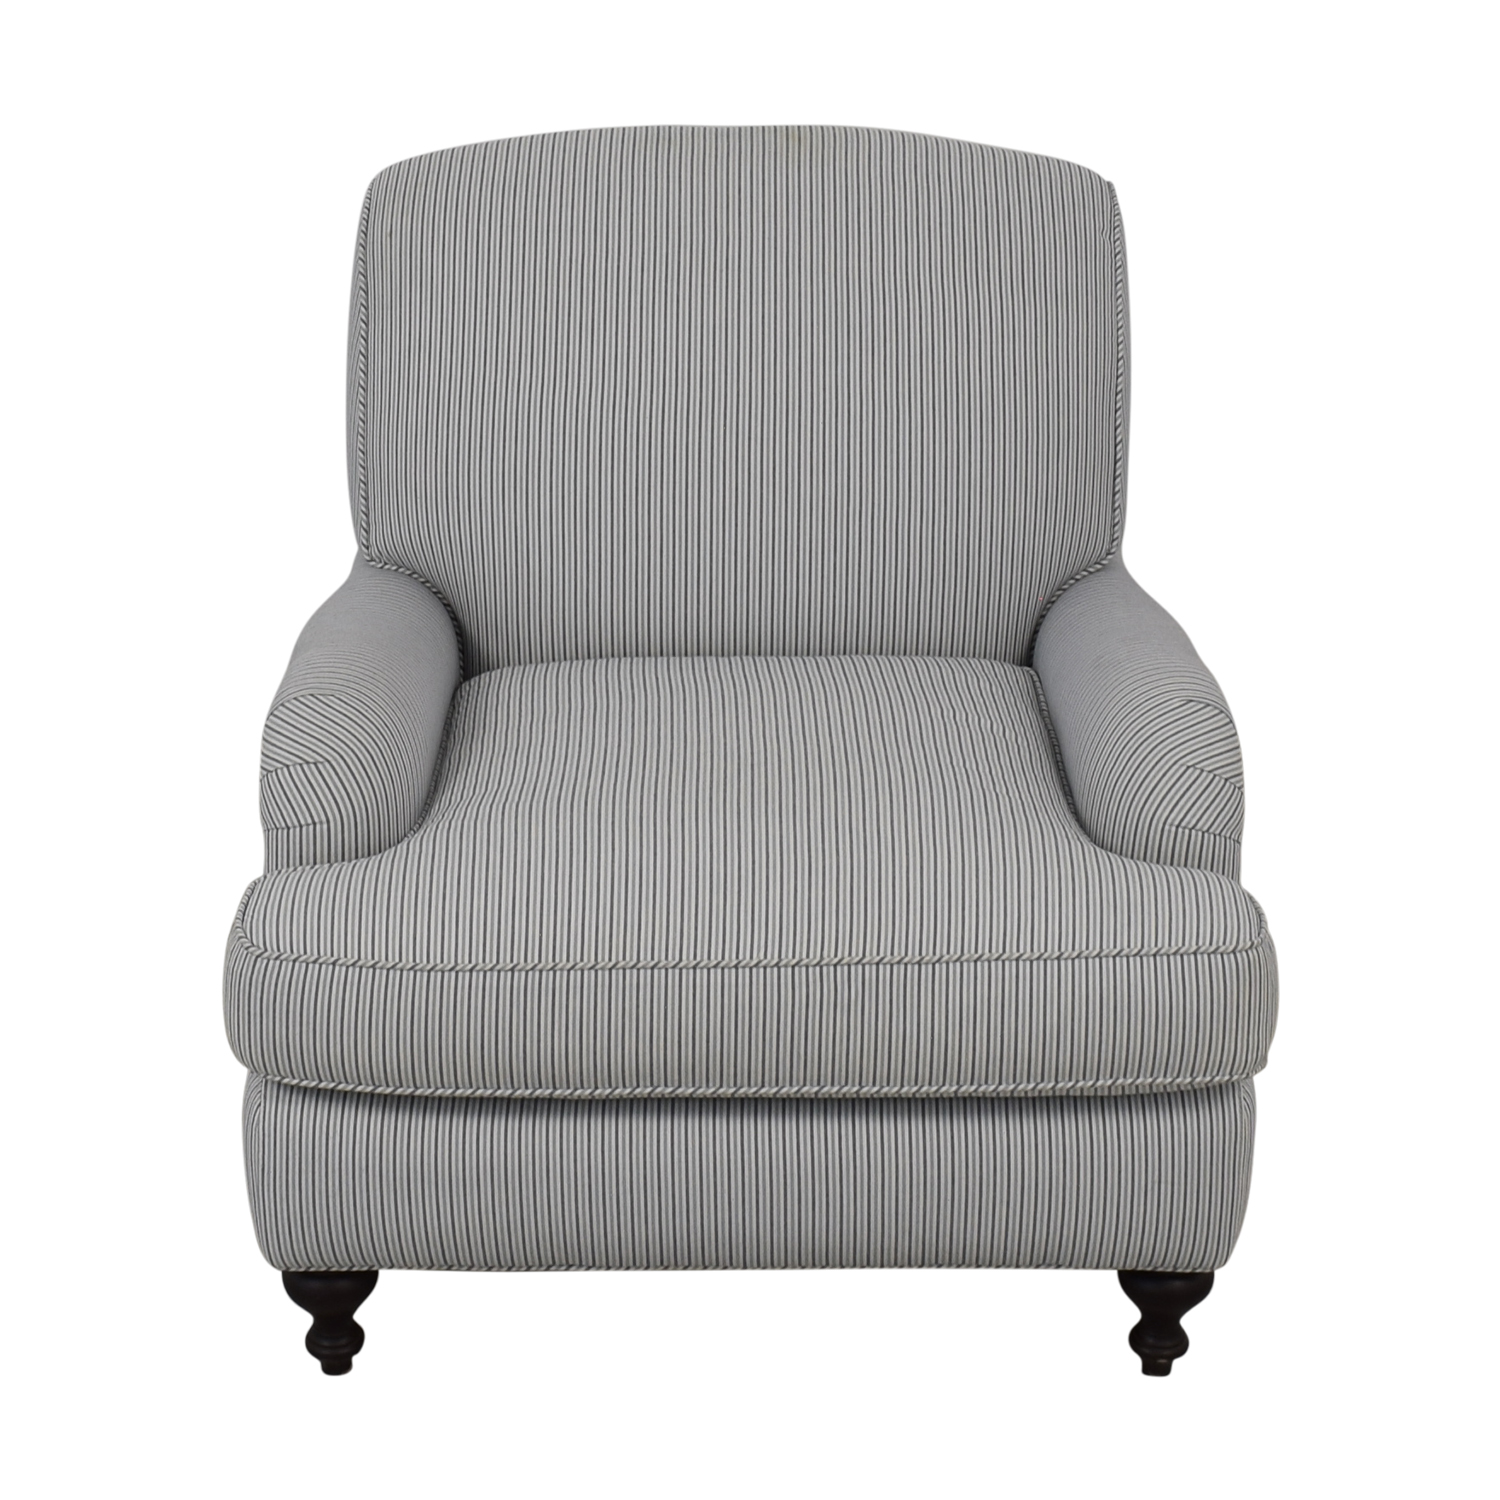 shop Serena & Lily Miramar Upholstered Side Chair Serena & Lily Chairs